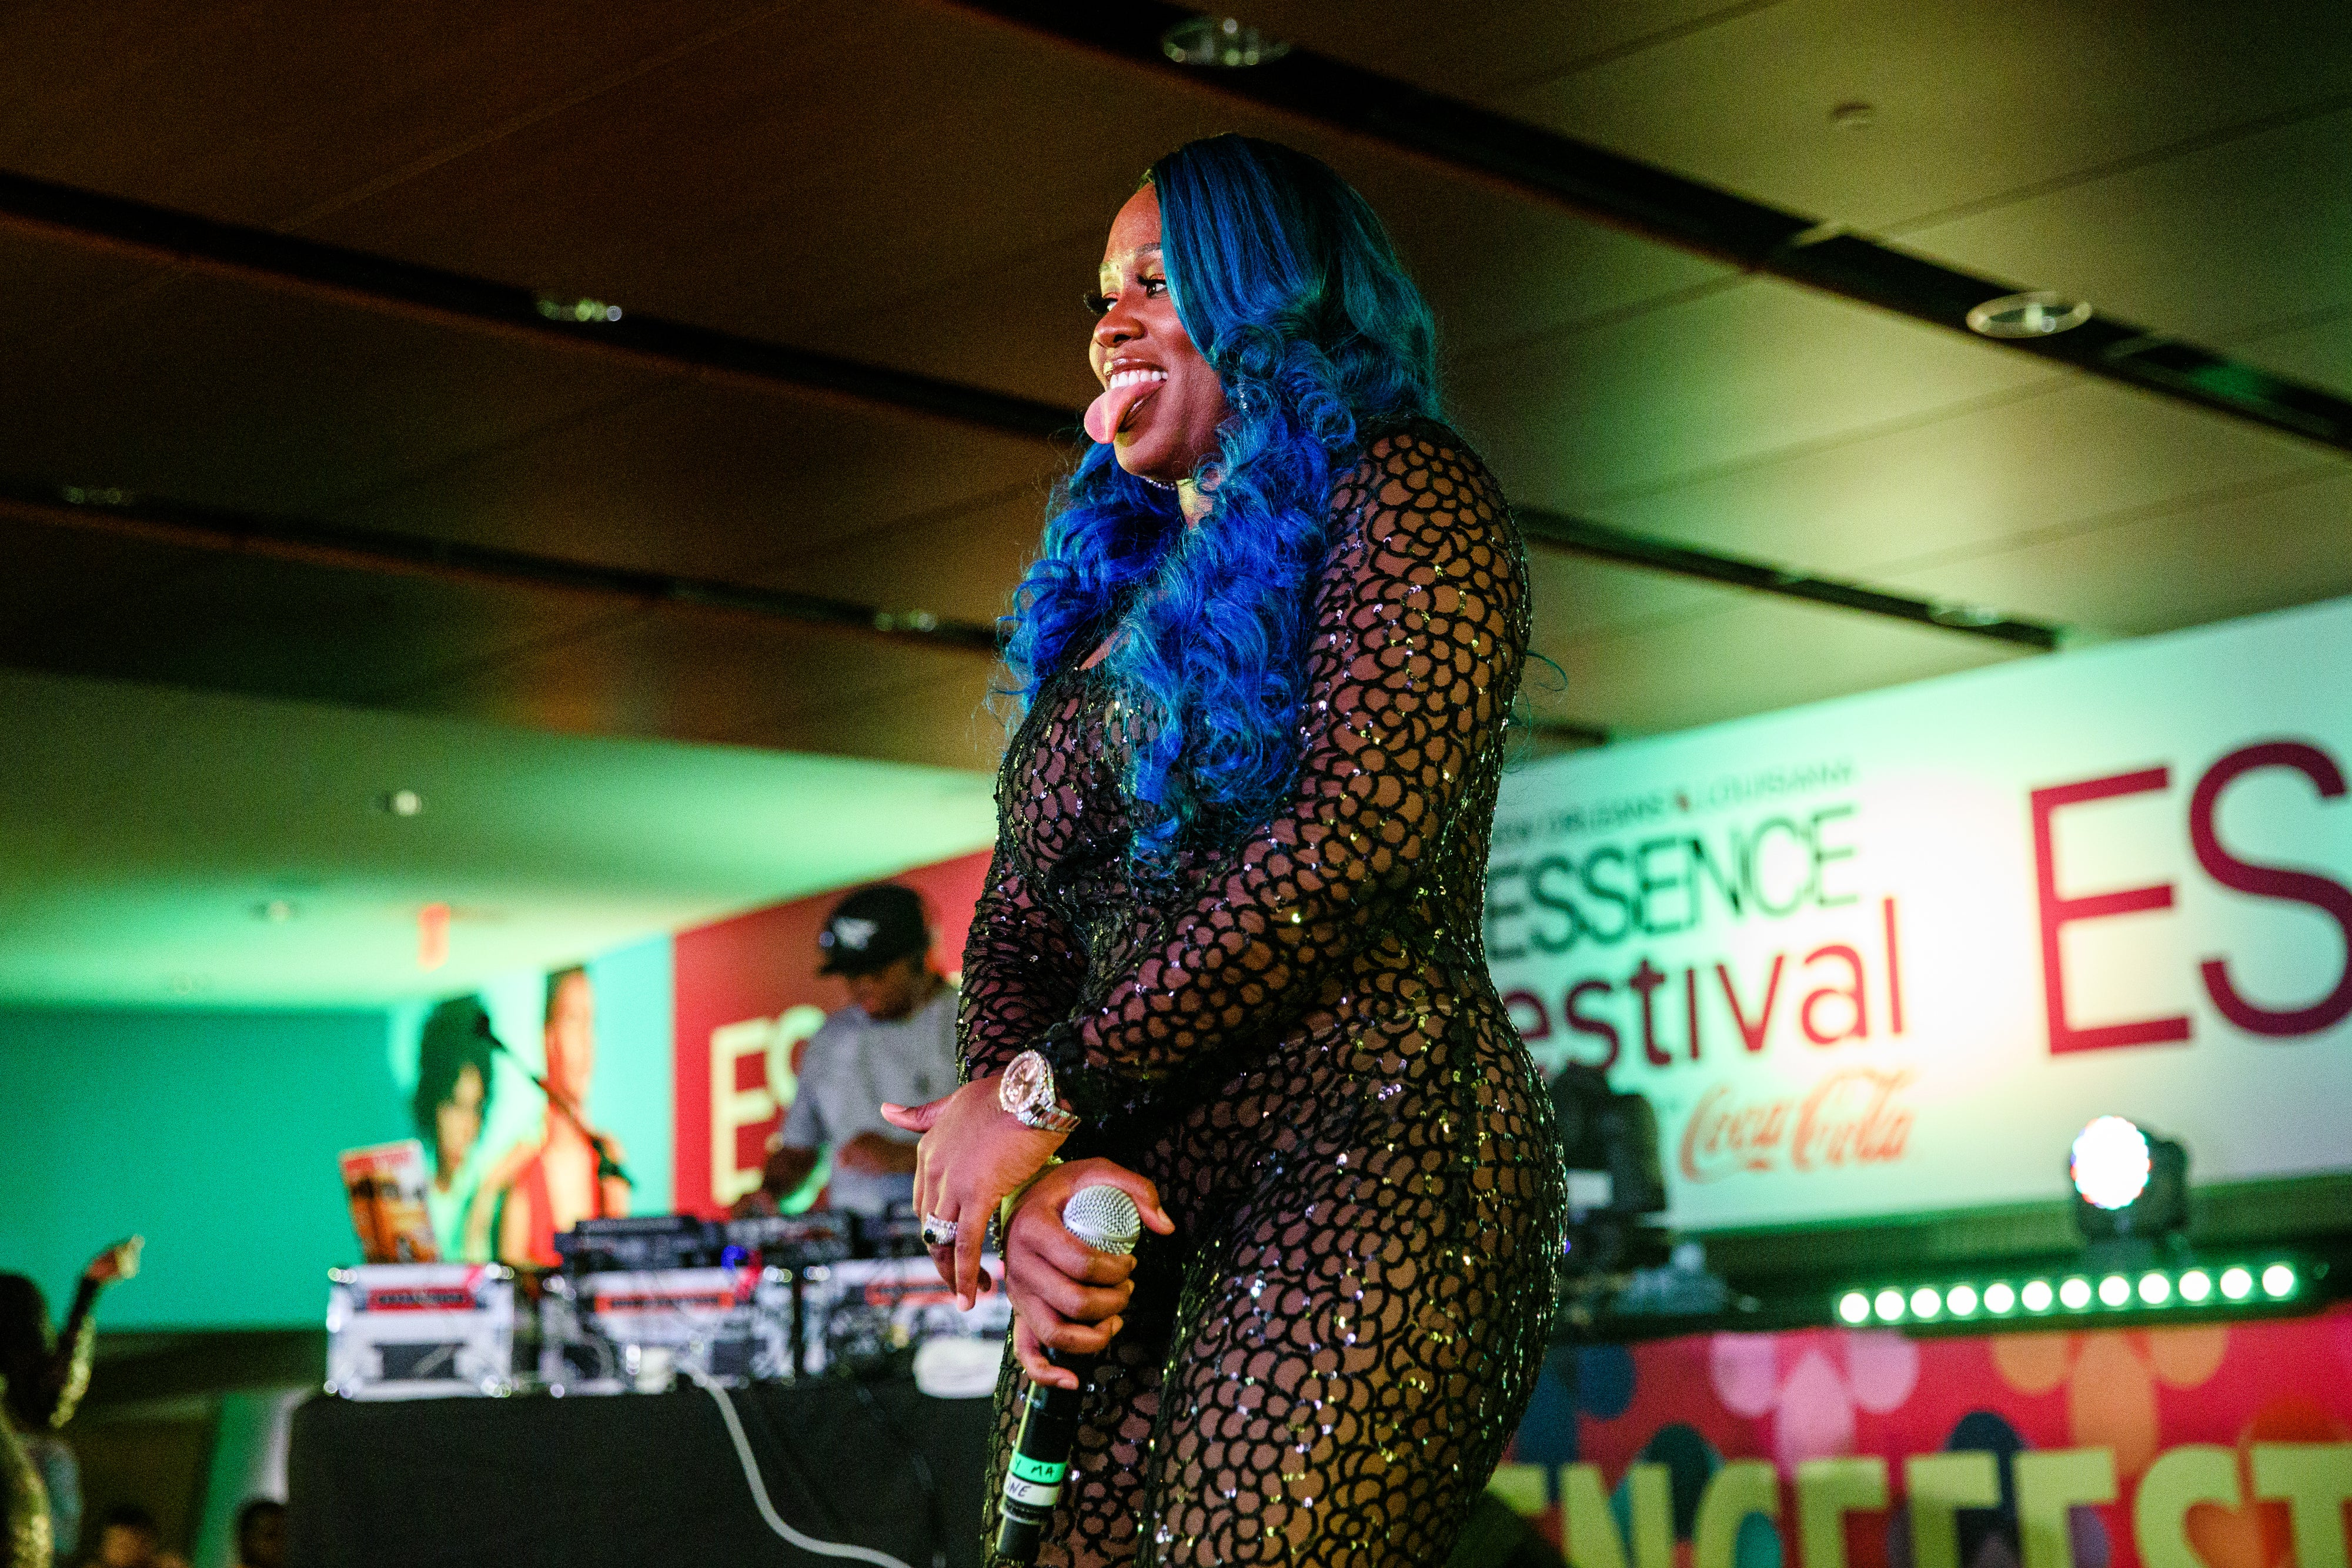 Watch Remy Ma And Papoose Bring Their Black Love Celebration To The Stage In New Orleans